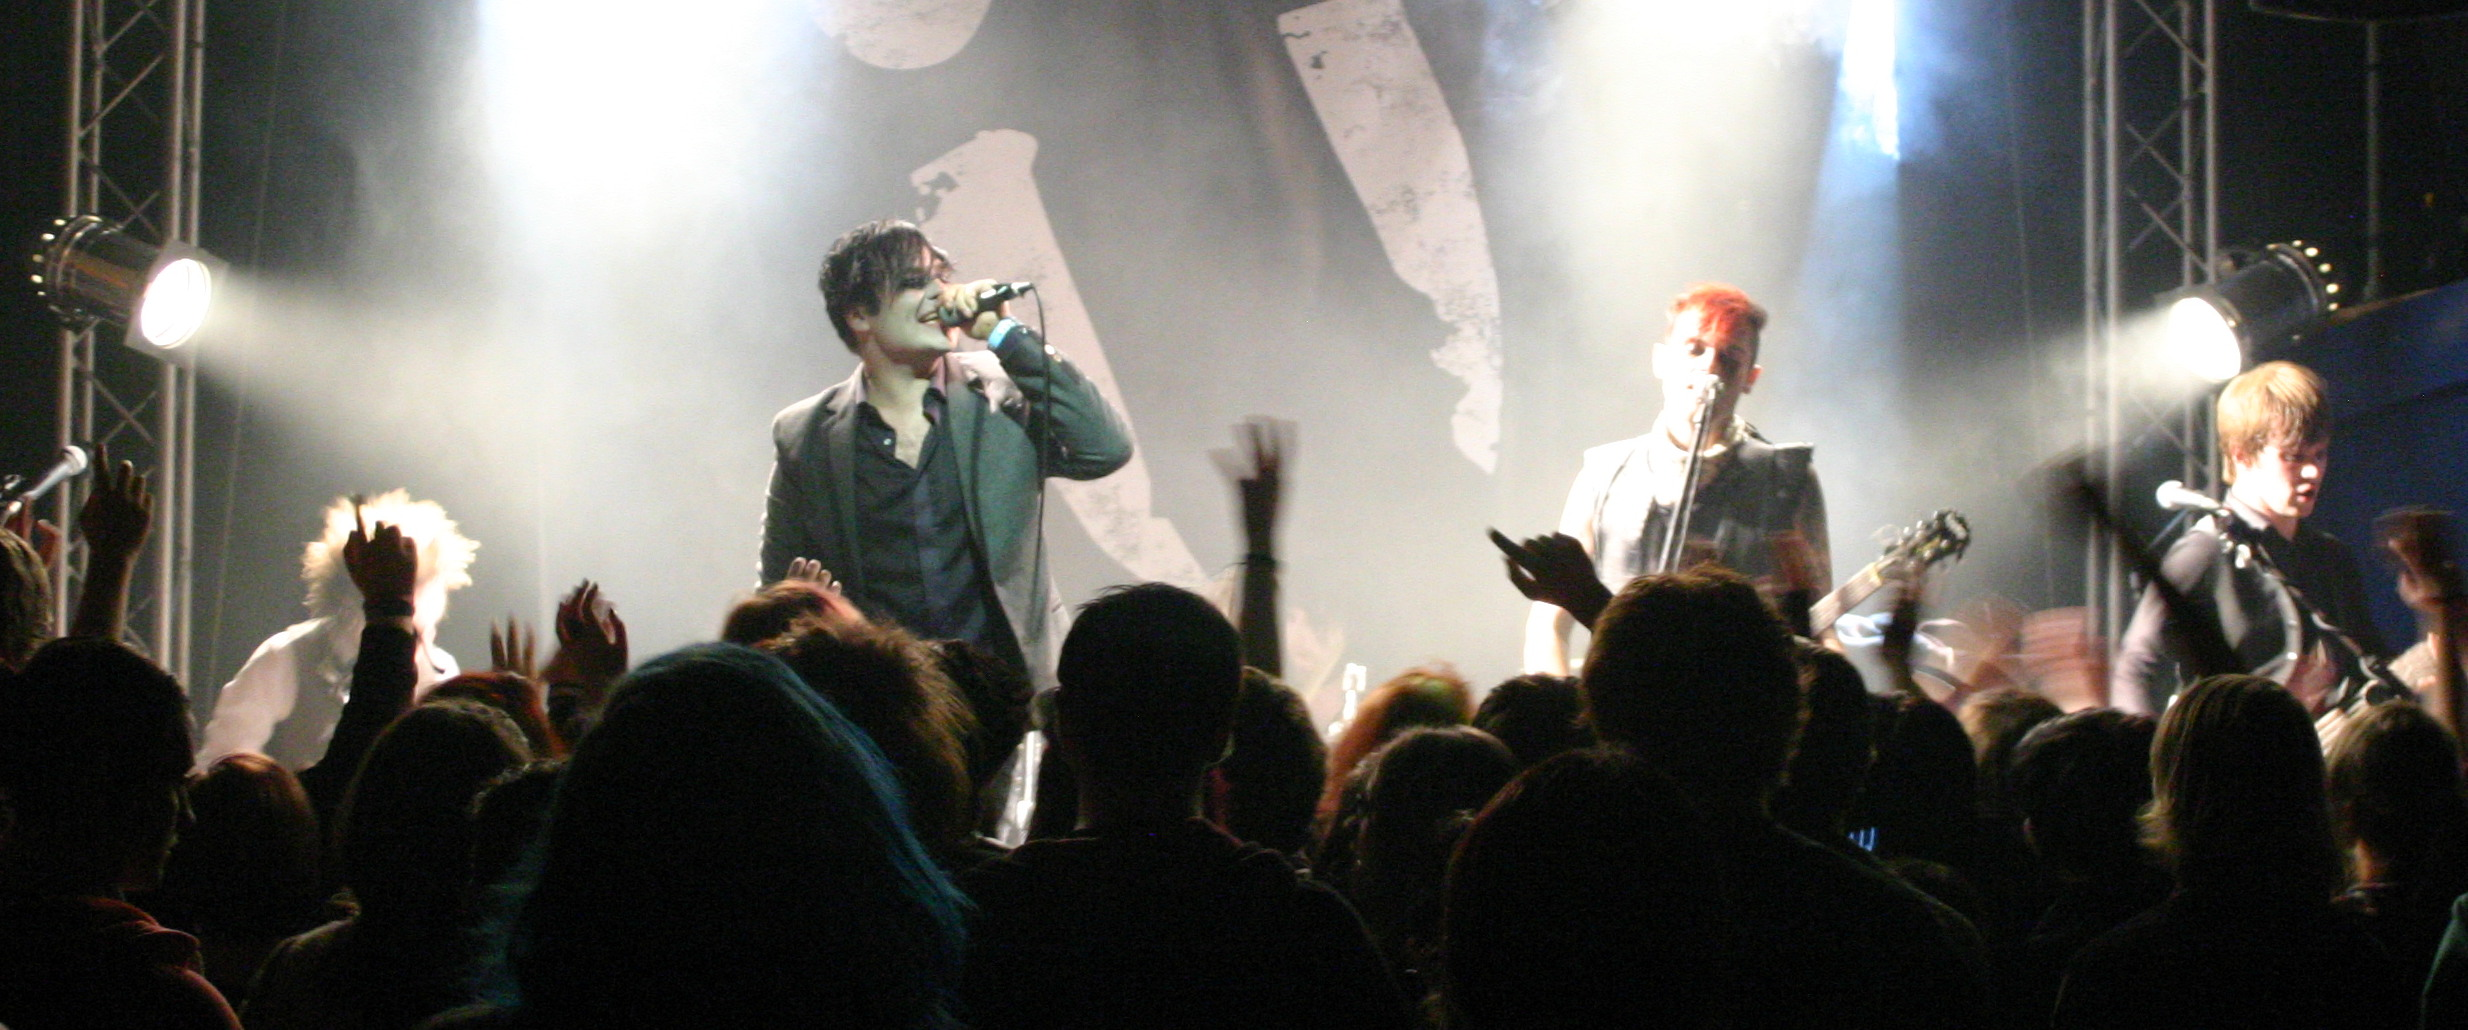 Fearless_Vampire_Killers_live_2012_Newcastle_photo_2a